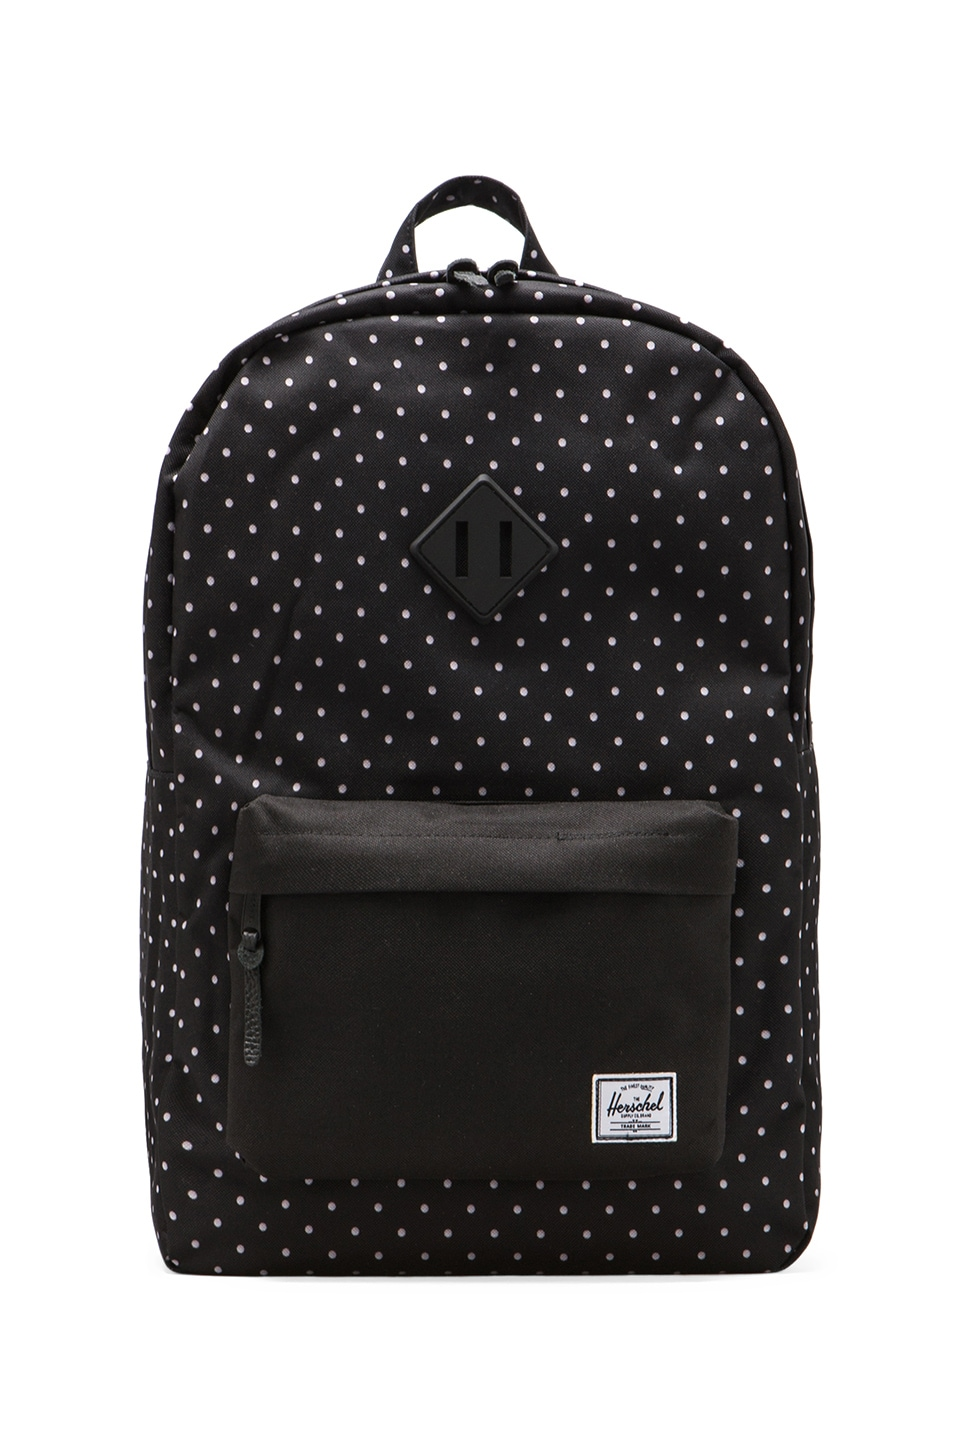 Herschel Supply Co. Heritage Polka Dot Backpack en Noir/Blanc